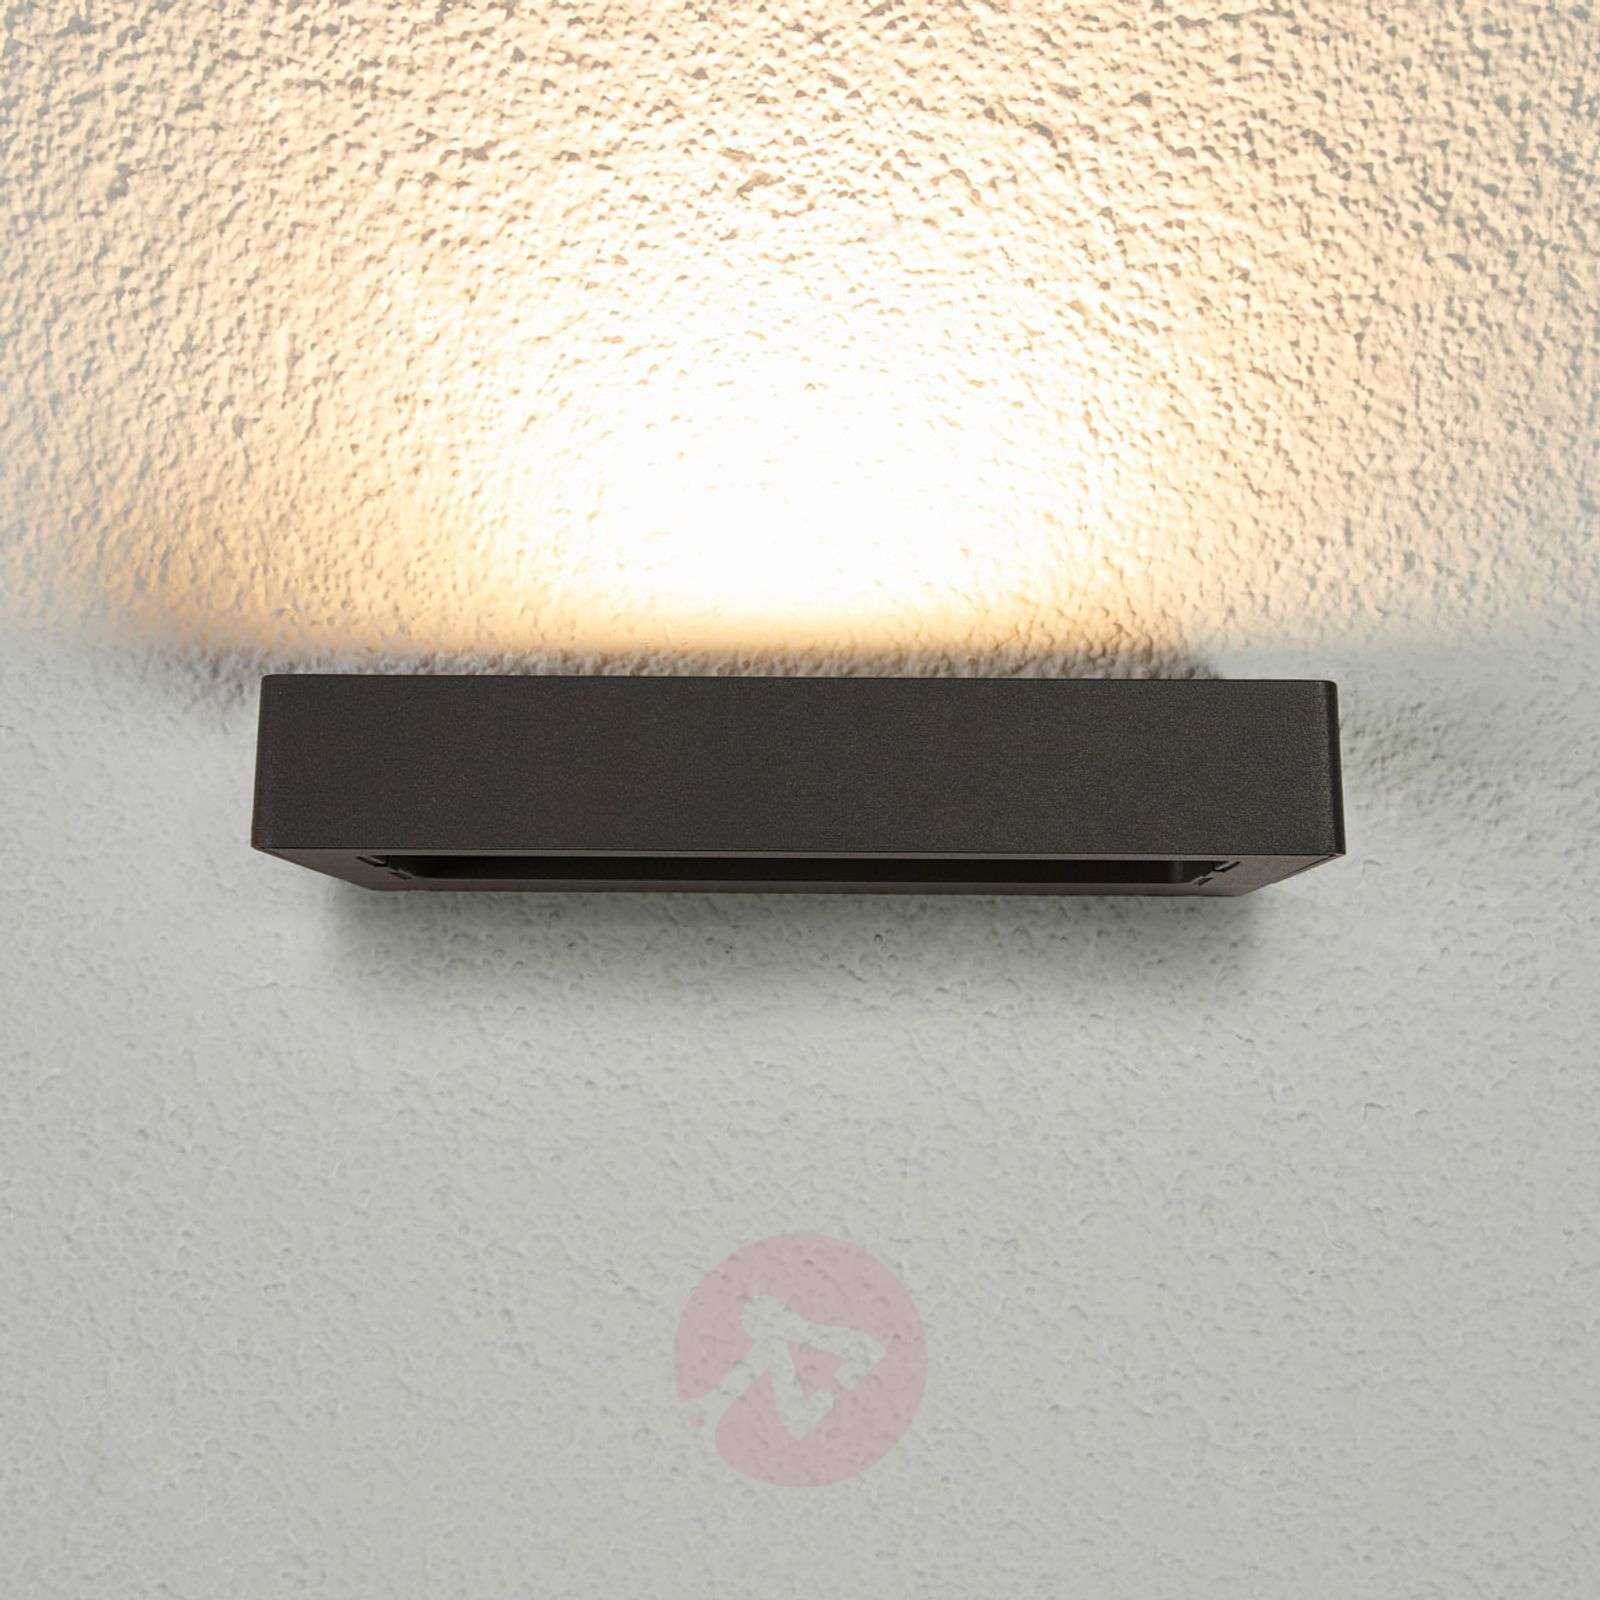 Applique LED da esterni Richa, emissione variabile-9618104-01